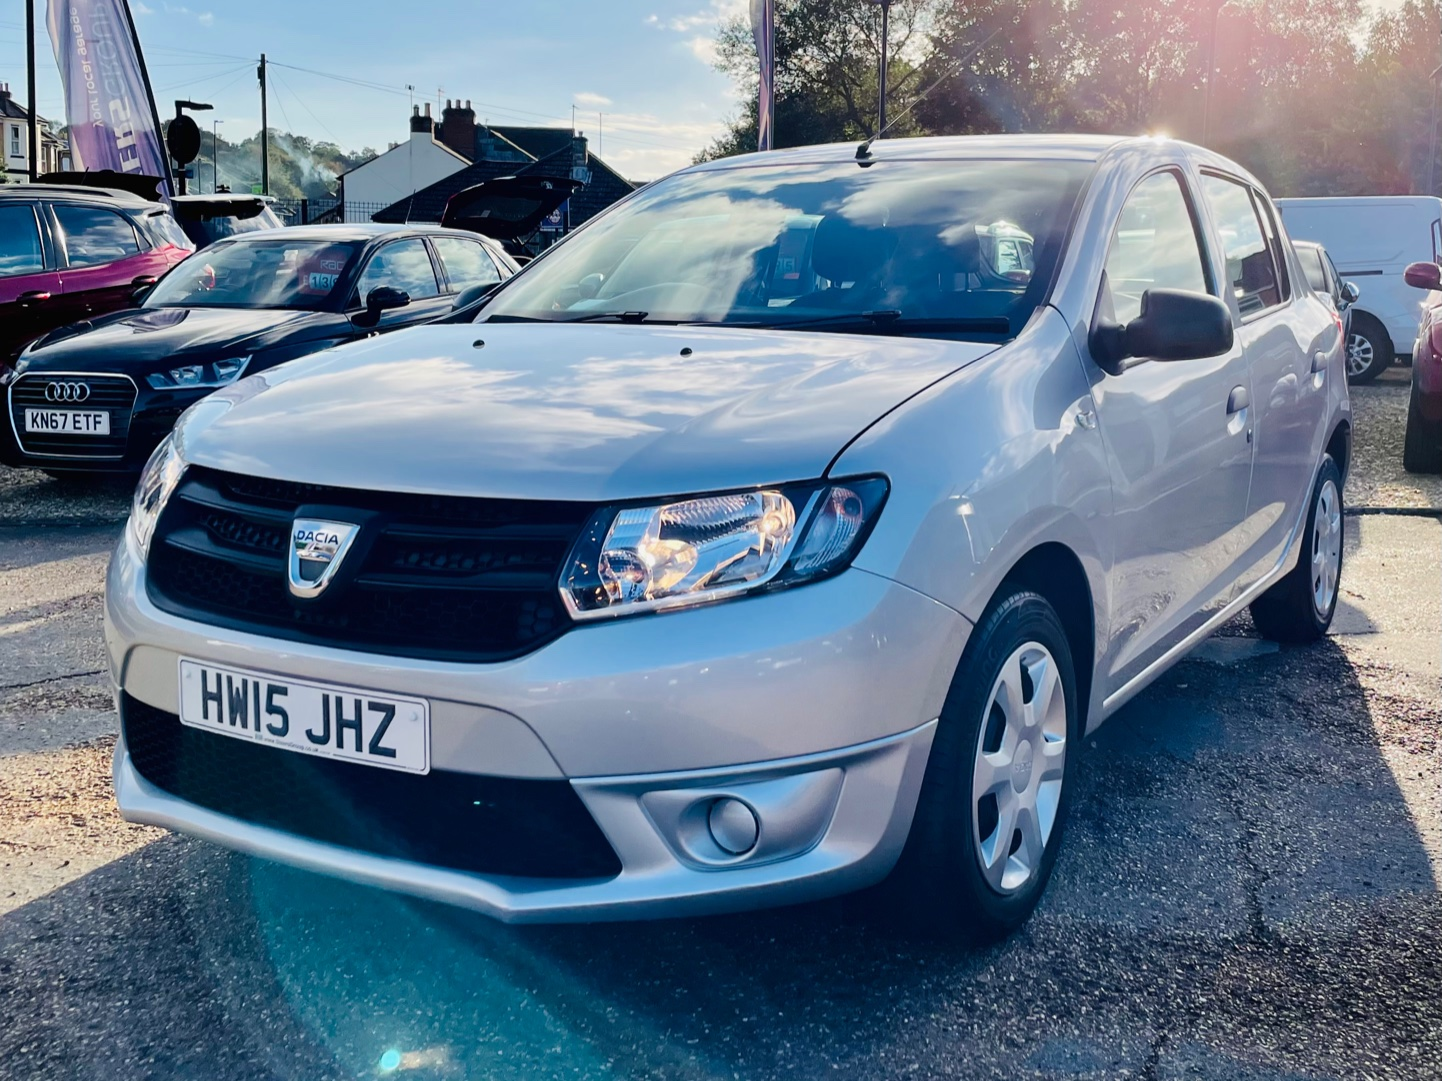 Car For Sale Dacia Sandero - HW15JHZ Sixers Group Image #6